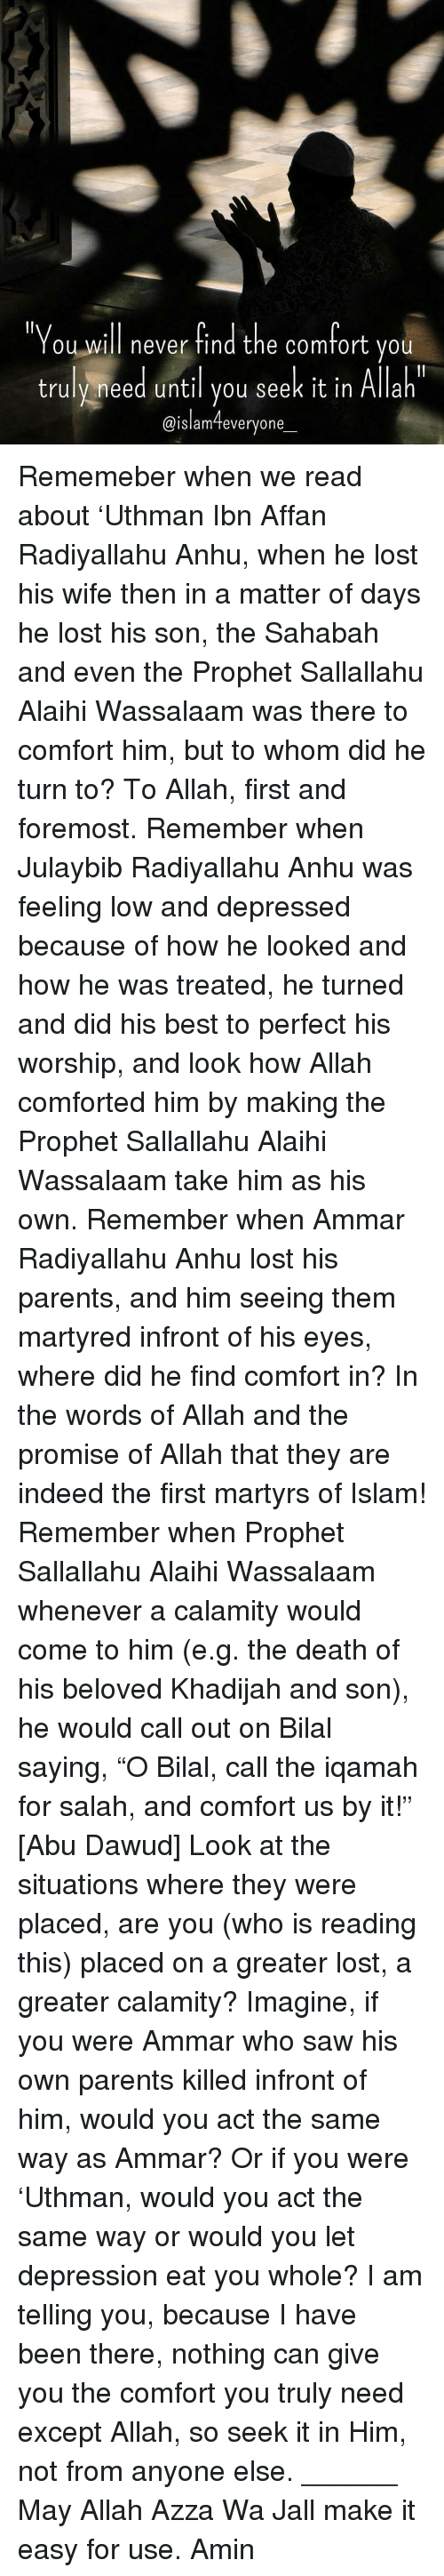 "Memes, Indeed, and The Prophet: ""You will never find the comfort you  truly need until you seek it in Allah  @islam everyone Rememeber when we read about 'Uthman Ibn Affan Radiyallahu Anhu, when he lost his wife then in a matter of days he lost his son, the Sahabah and even the Prophet Sallallahu Alaihi Wassalaam was there to comfort him, but to whom did he turn to? To Allah, first and foremost. Remember when Julaybib Radiyallahu Anhu was feeling low and depressed because of how he looked and how he was treated, he turned and did his best to perfect his worship, and look how Allah comforted him by making the Prophet Sallallahu Alaihi Wassalaam take him as his own. Remember when Ammar Radiyallahu Anhu lost his parents, and him seeing them martyred infront of his eyes, where did he find comfort in? In the words of Allah and the promise of Allah that they are indeed the first martyrs of Islam! Remember when Prophet Sallallahu Alaihi Wassalaam whenever a calamity would come to him (e.g. the death of his beloved Khadijah and son), he would call out on Bilal saying, ""O Bilal, call the iqamah for salah, and comfort us by it!"" [Abu Dawud] Look at the situations where they were placed, are you (who is reading this) placed on a greater lost, a greater calamity? Imagine, if you were Ammar who saw his own parents killed infront of him, would you act the same way as Ammar? Or if you were 'Uthman, would you act the same way or would you let depression eat you whole? I am telling you, because I have been there, nothing can give you the comfort you truly need except Allah, so seek it in Him, not from anyone else. ______ May Allah Azza Wa Jall make it easy for use. Amin"